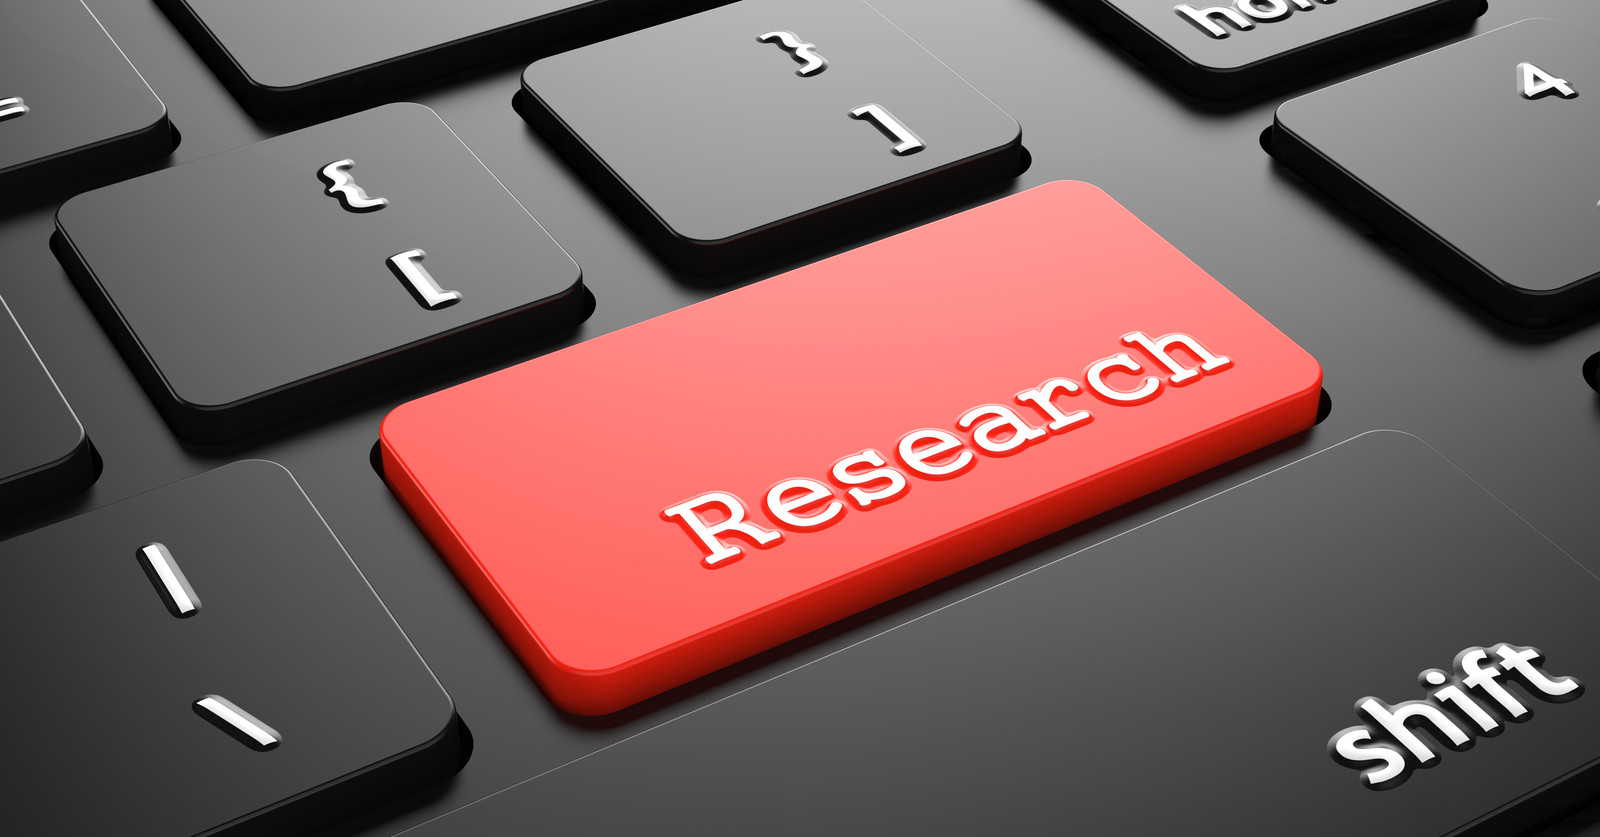 007 Researchkey Research Paper Best Site To Download Papers Unbelievable Free How From Researchgate Springer Sciencedirect Full